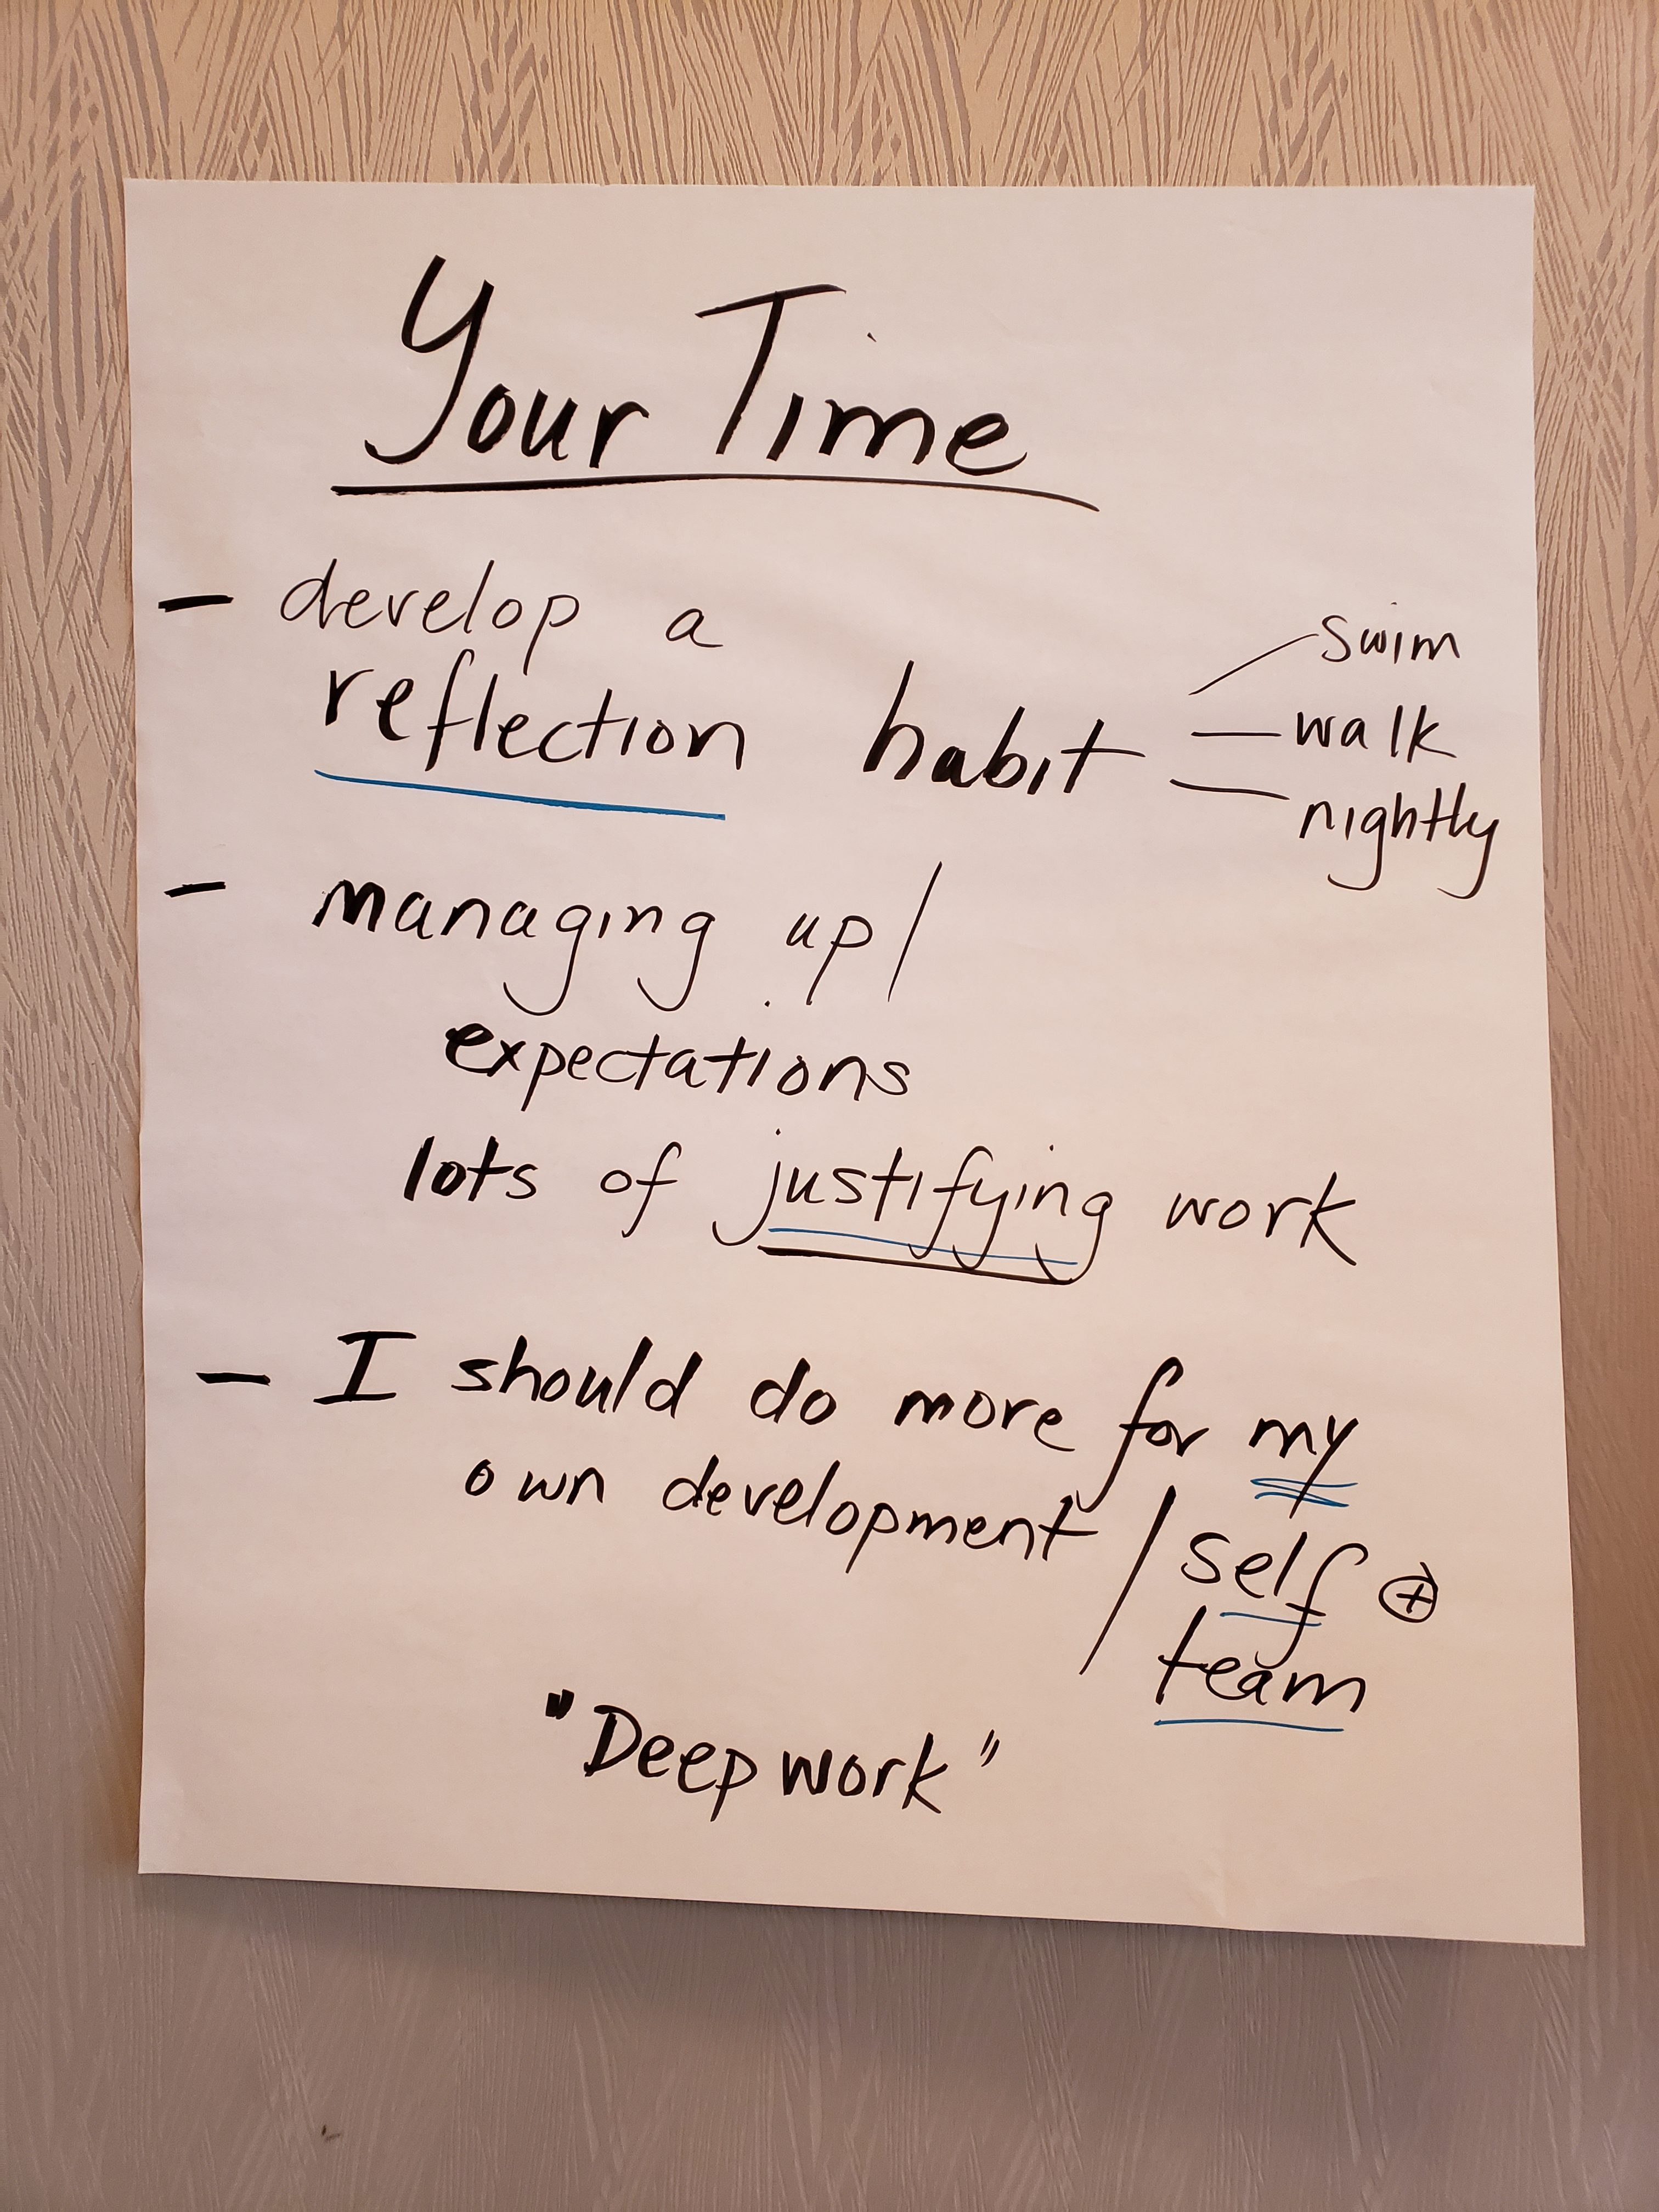 flip chart with ideas about your time